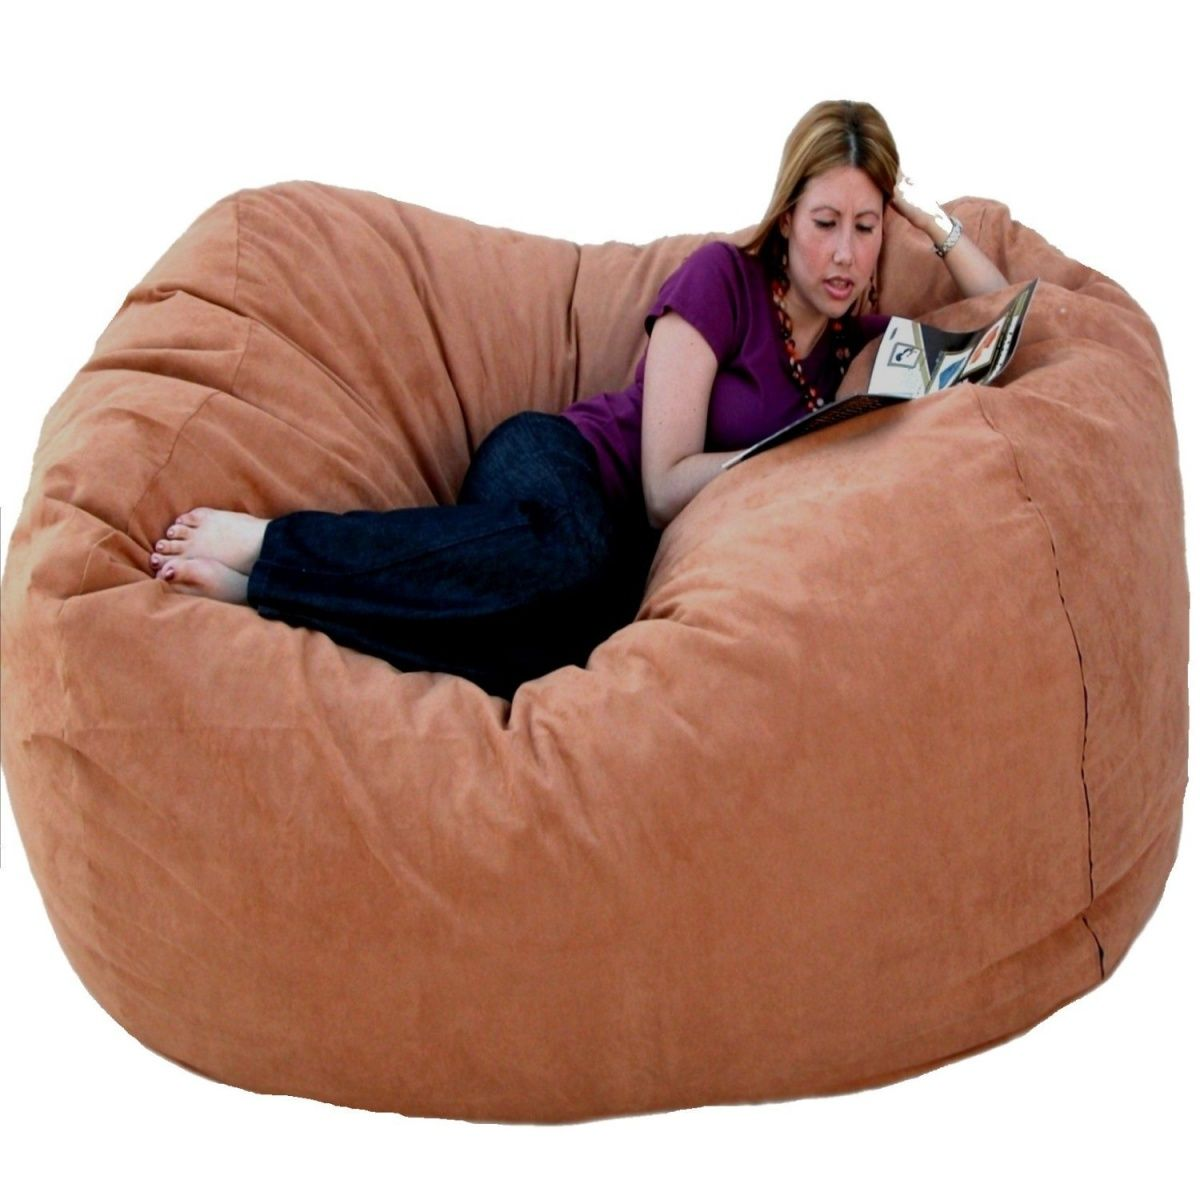 Delicieux Large Bean Bag Chairs For Adults